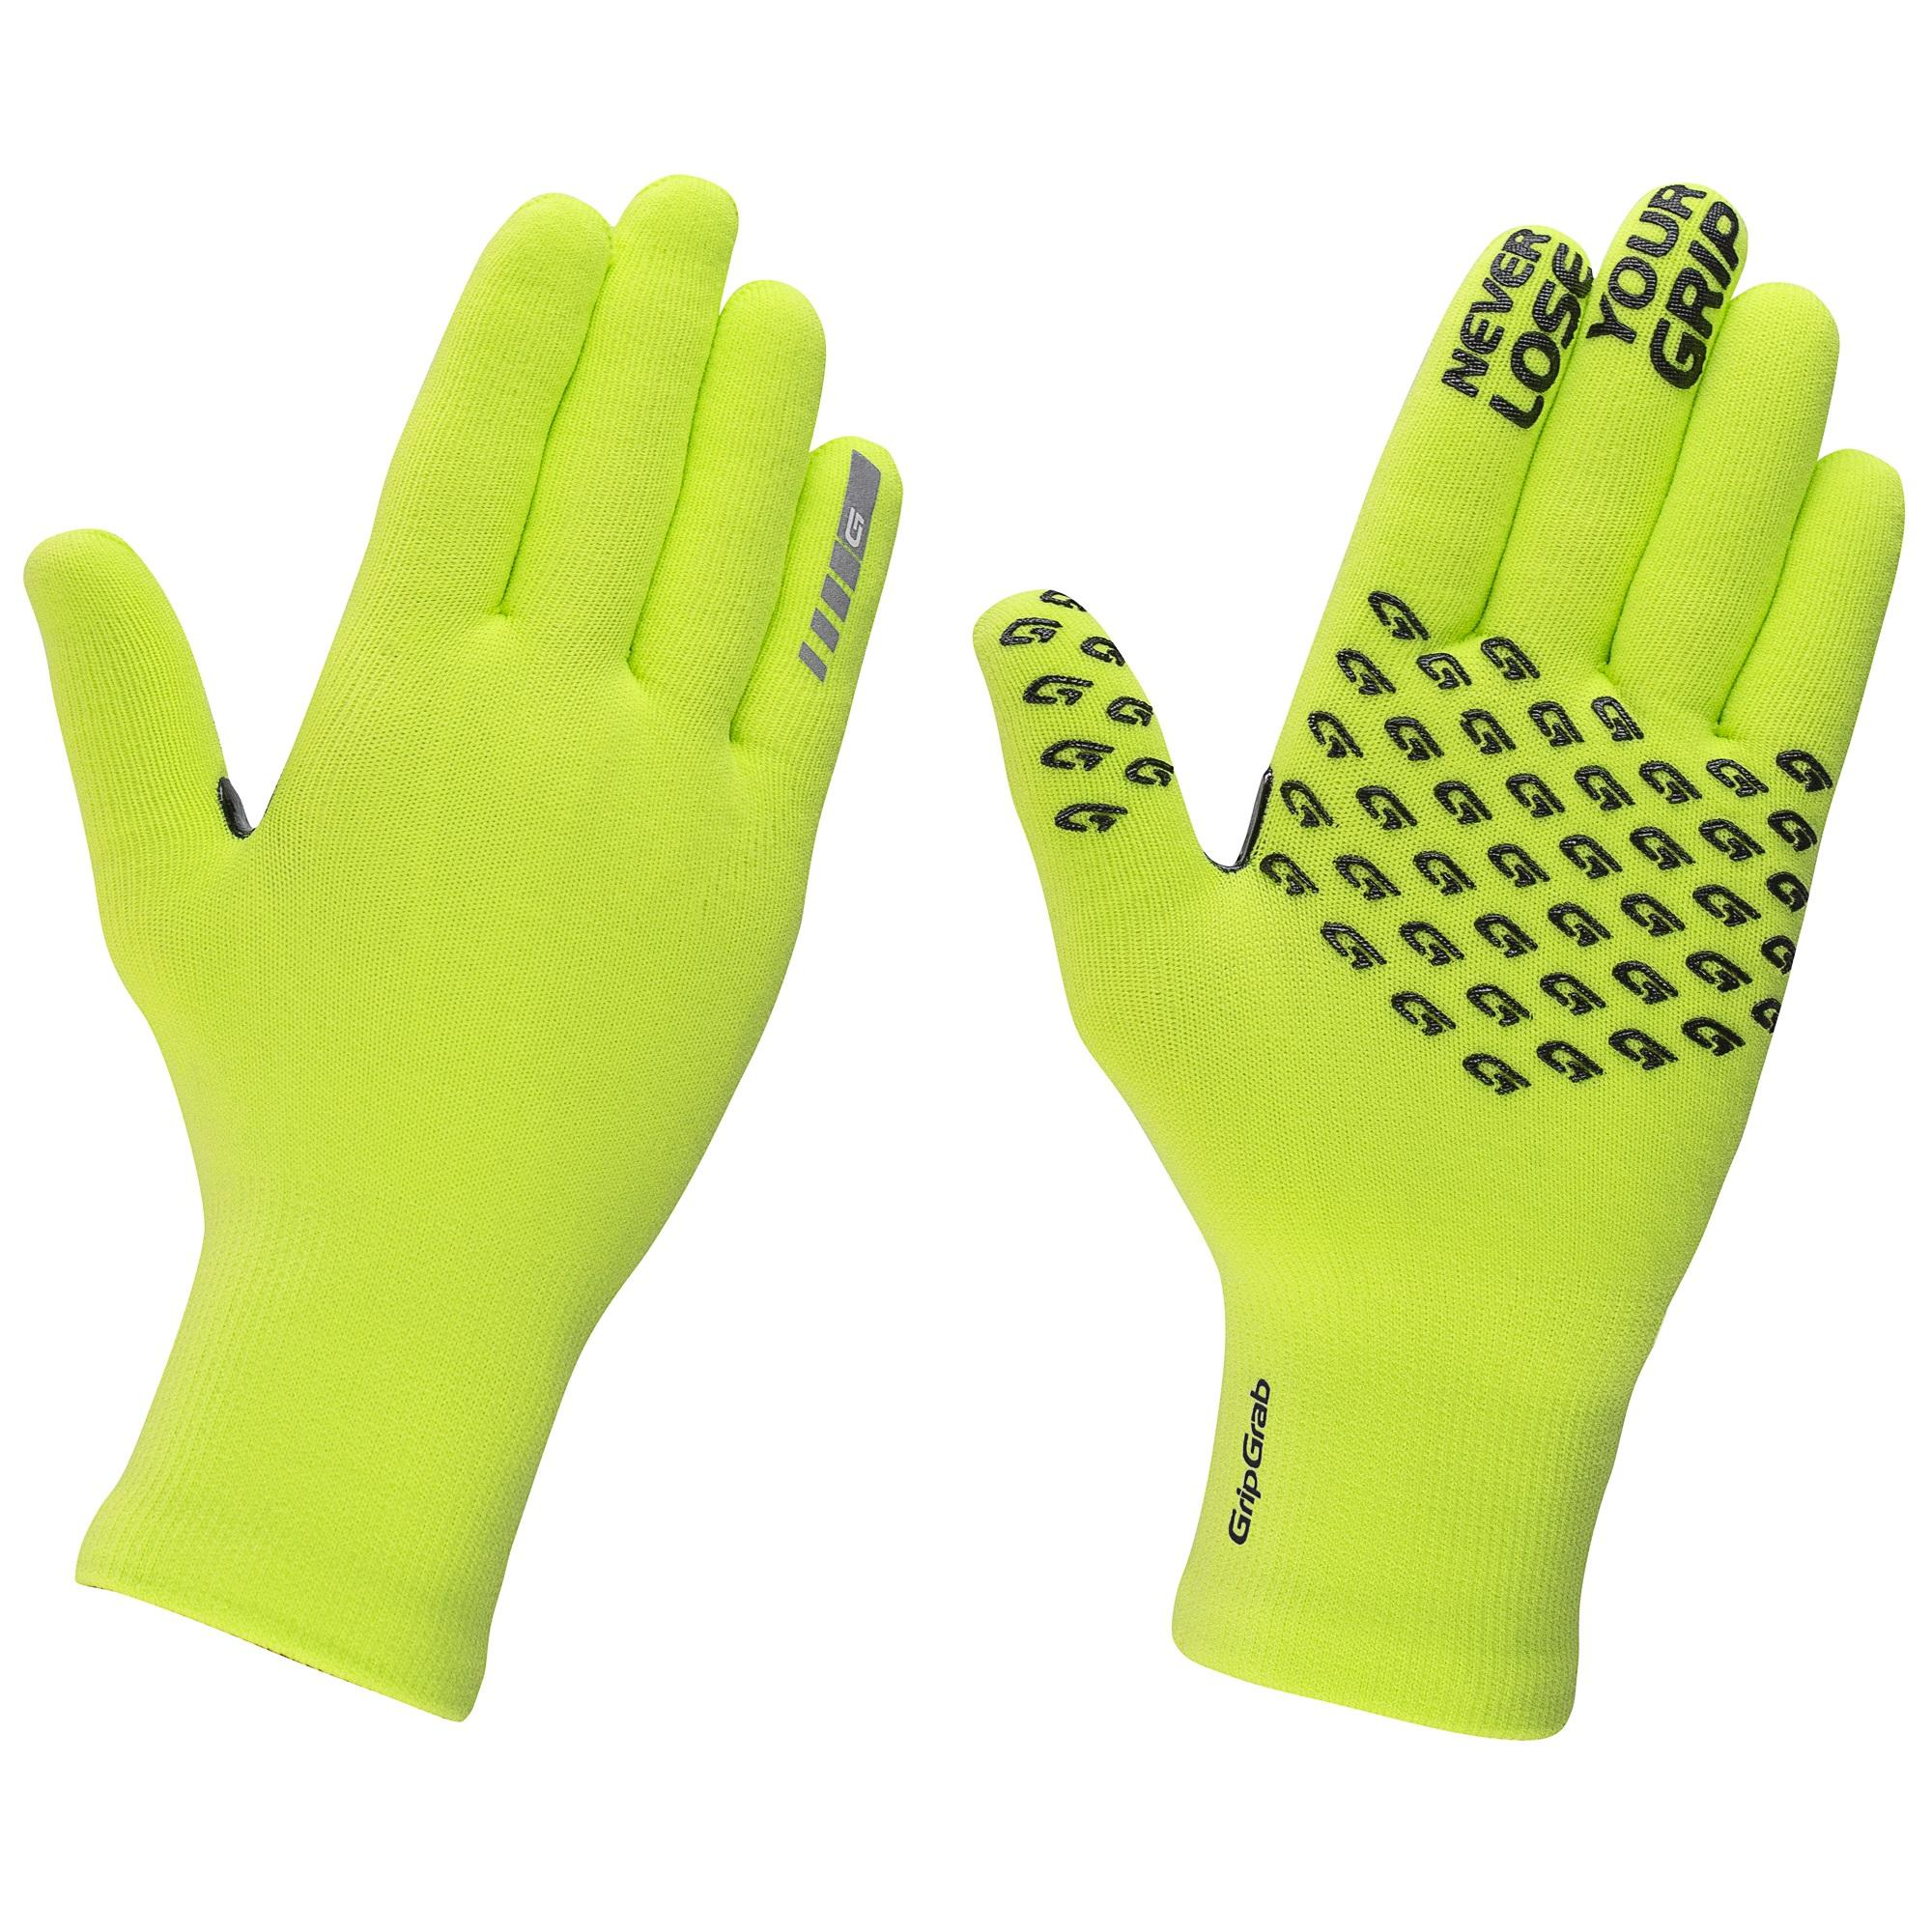 Afbeelding GripGrab Fietshandschoenen Winter Unisex Fluo - Waterproof Knitted Thermal Glove Yellow Hi-Vis